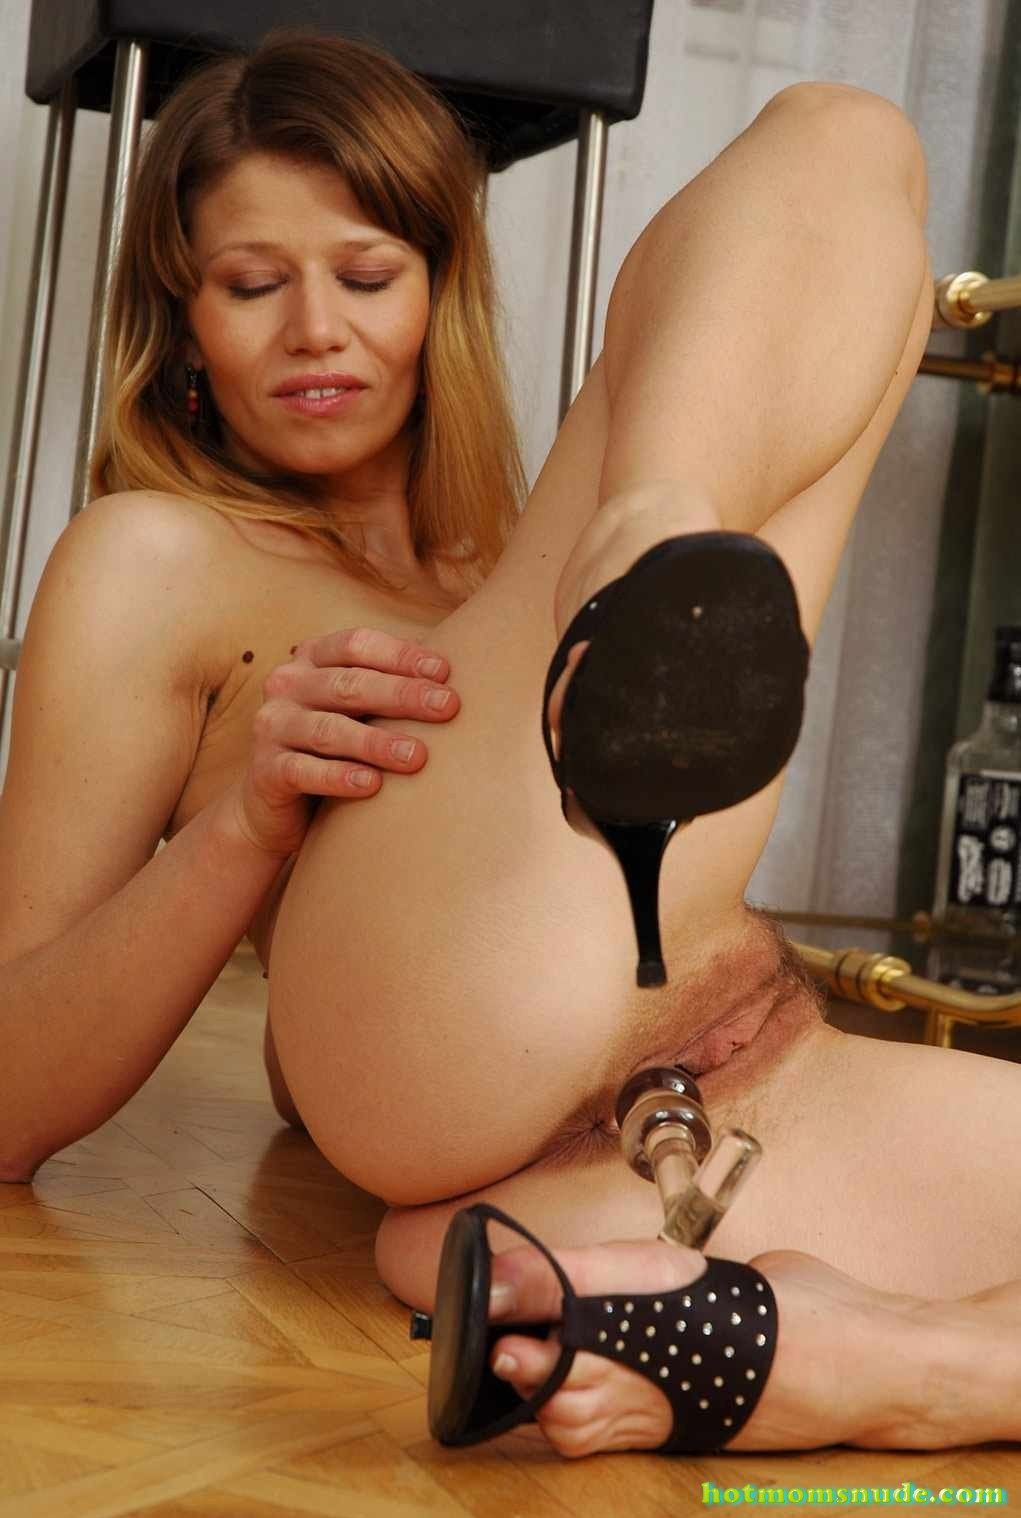 Hot Patricia Nude Pics And Biography - Hot Moms Nude-7305